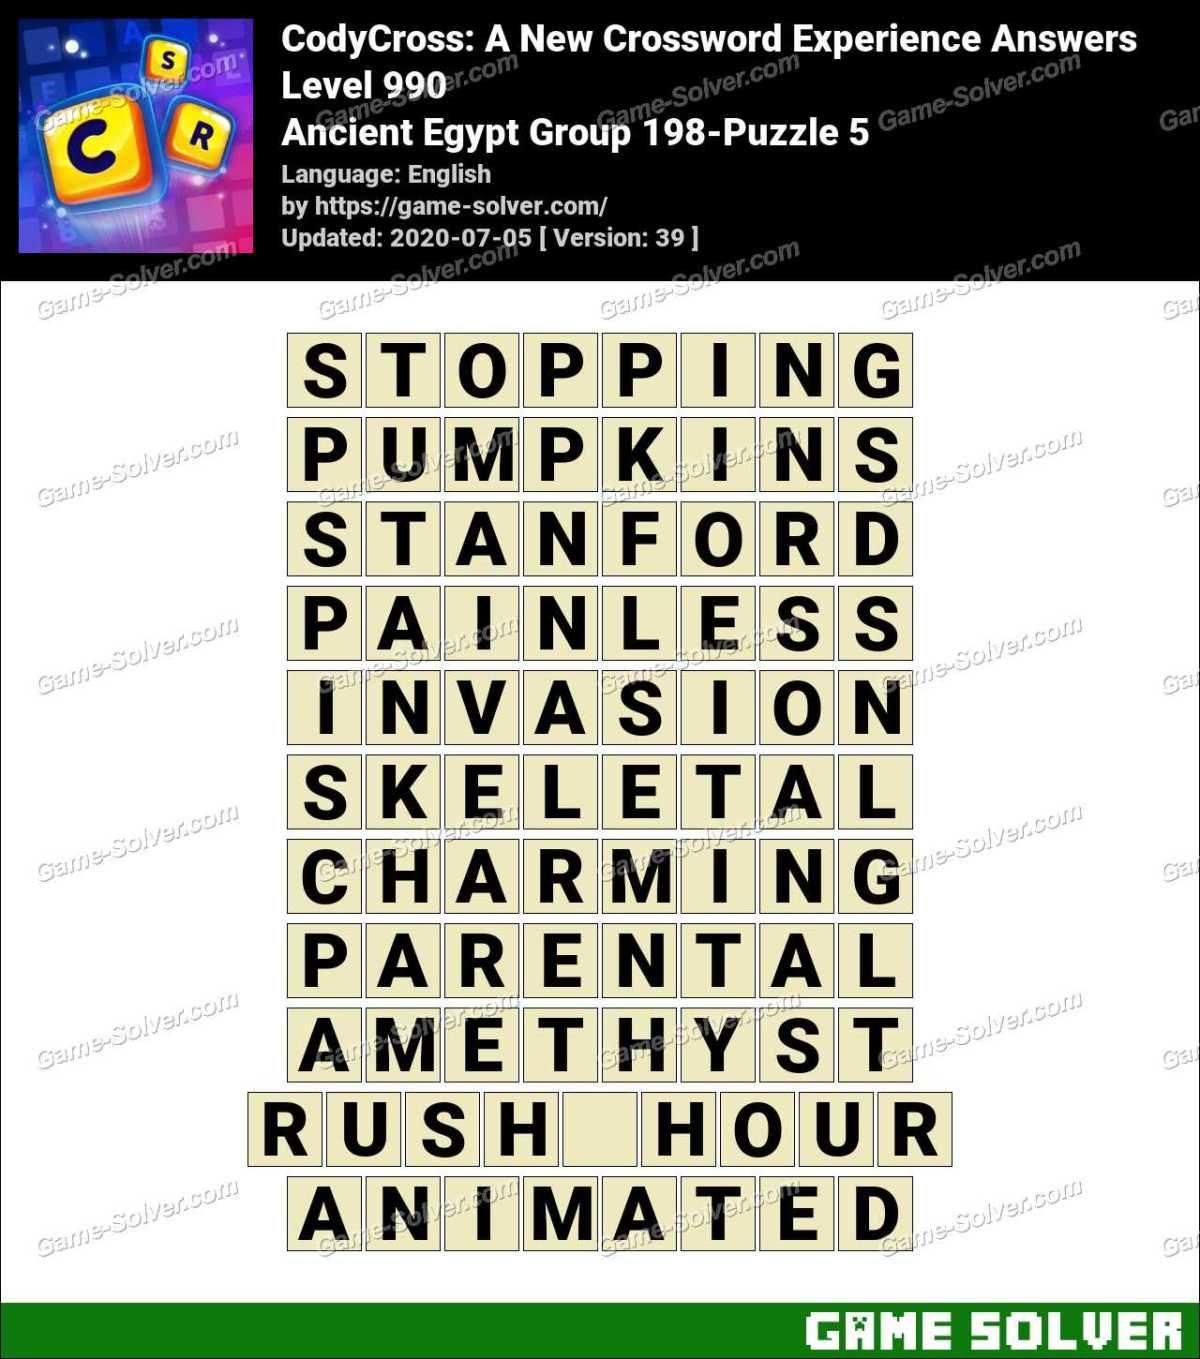 CodyCross Ancient Egypt Group 198-Puzzle 5 Answers